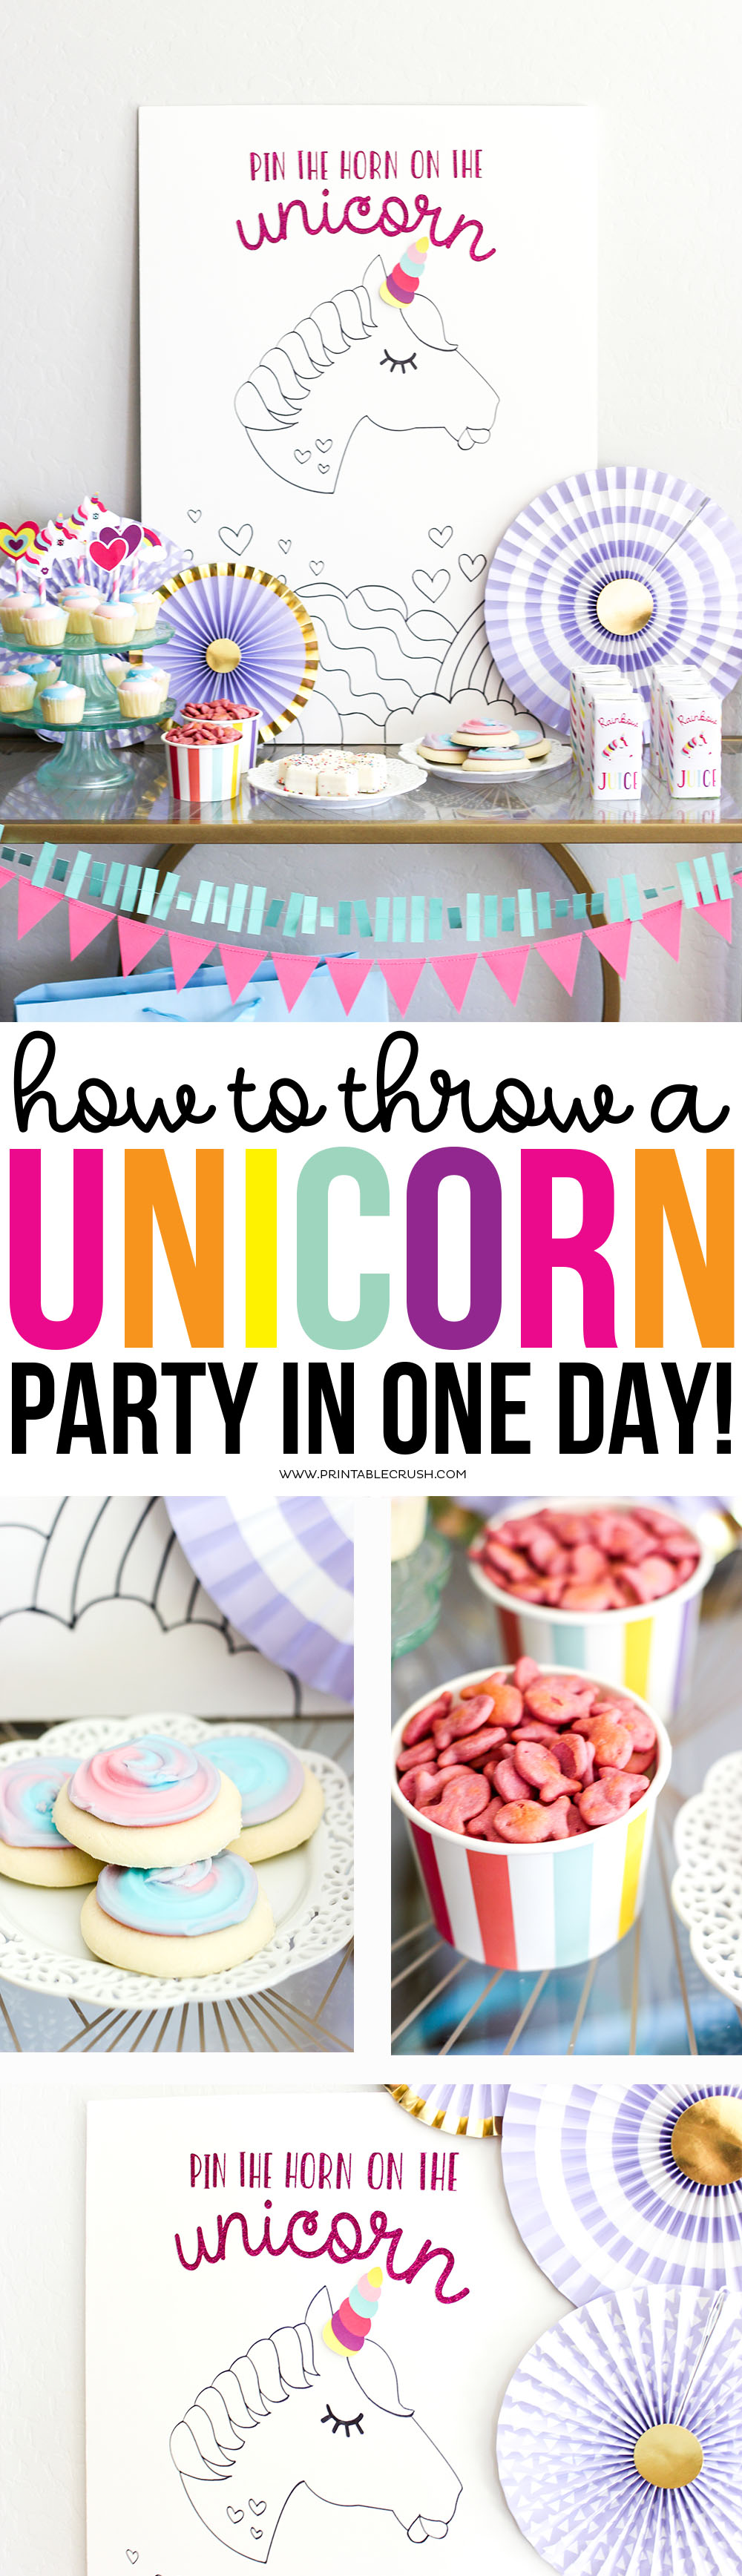 Learn how to Throw a Unicorn Party in One Day with all these budget friendly tips! From party planning and shopping to printables, this has you covered. via @printablecrush